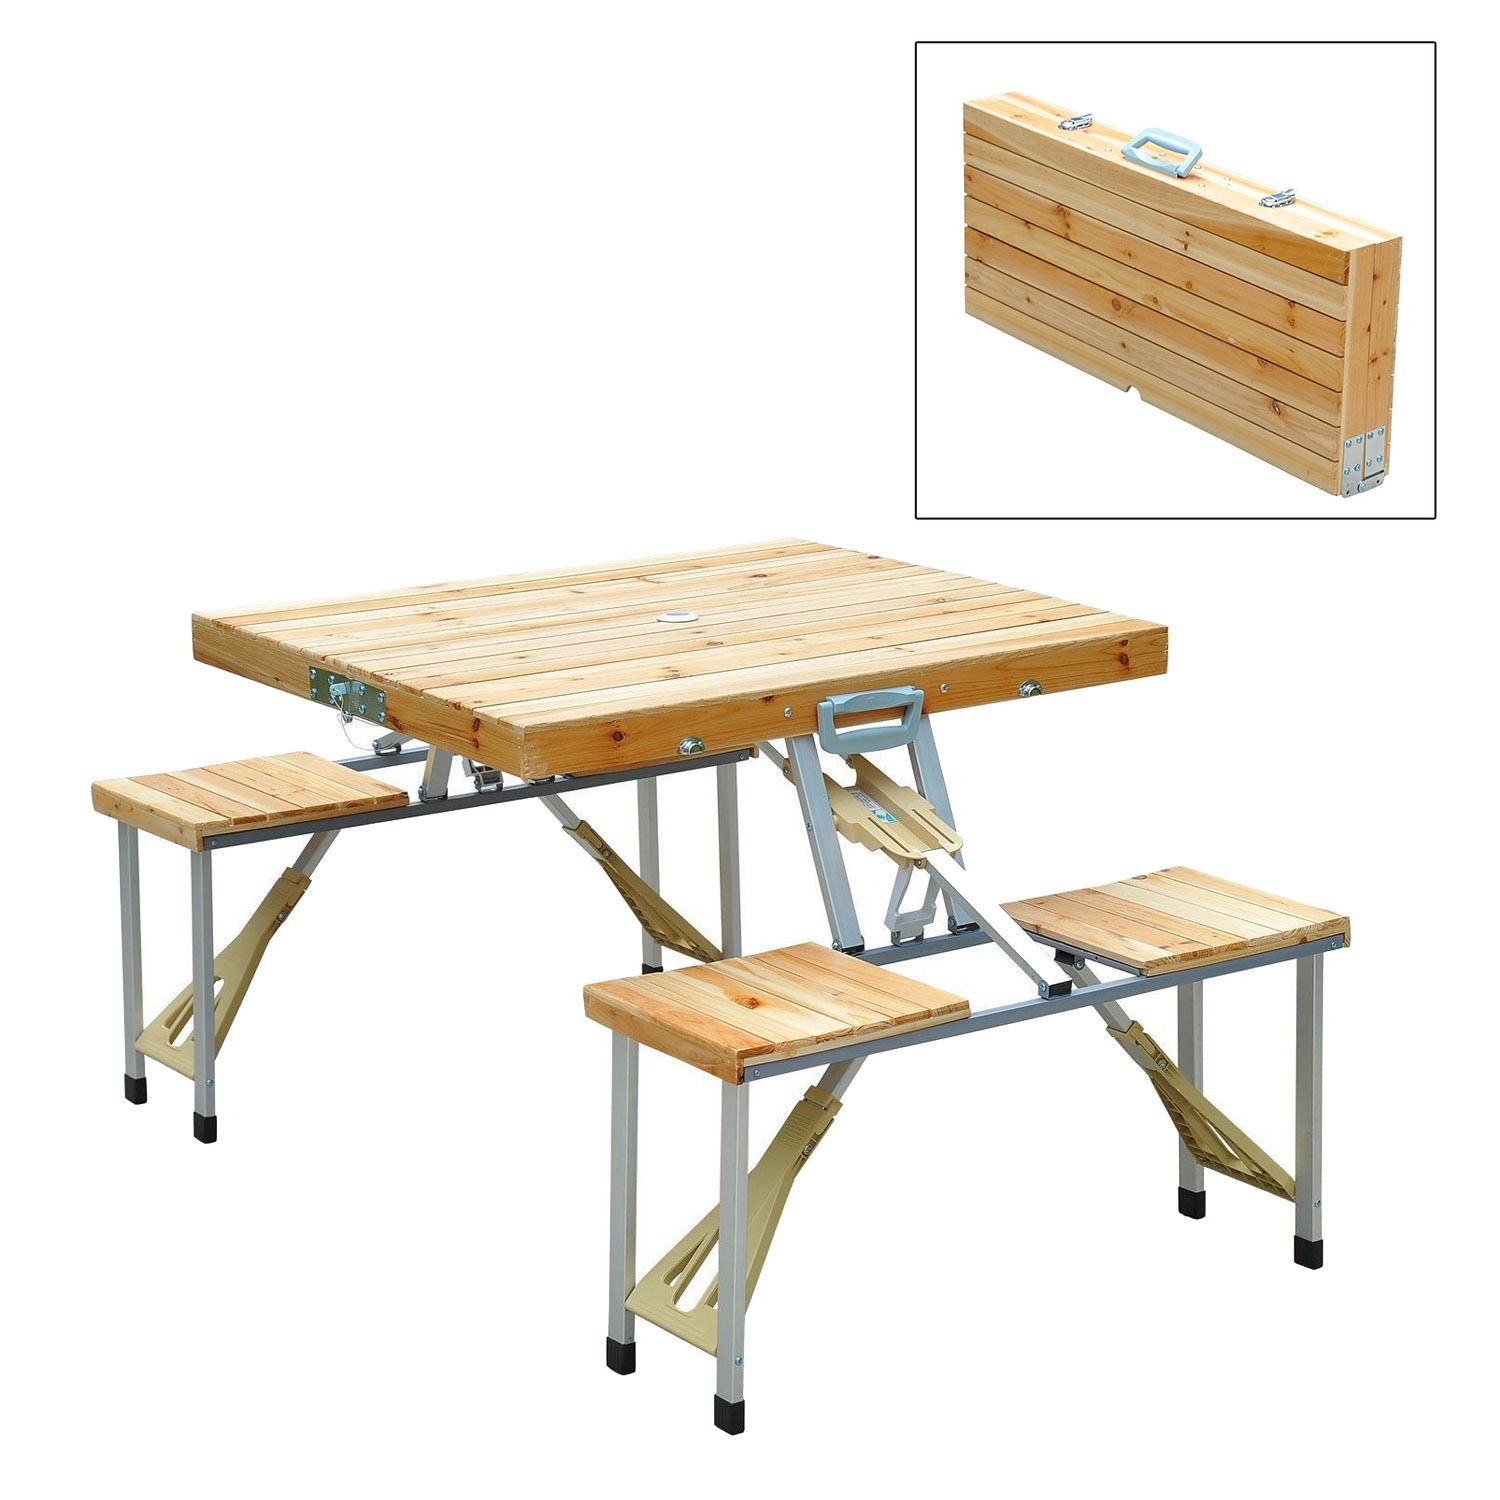 painted urbanamericana folding table img wood sale products collections century